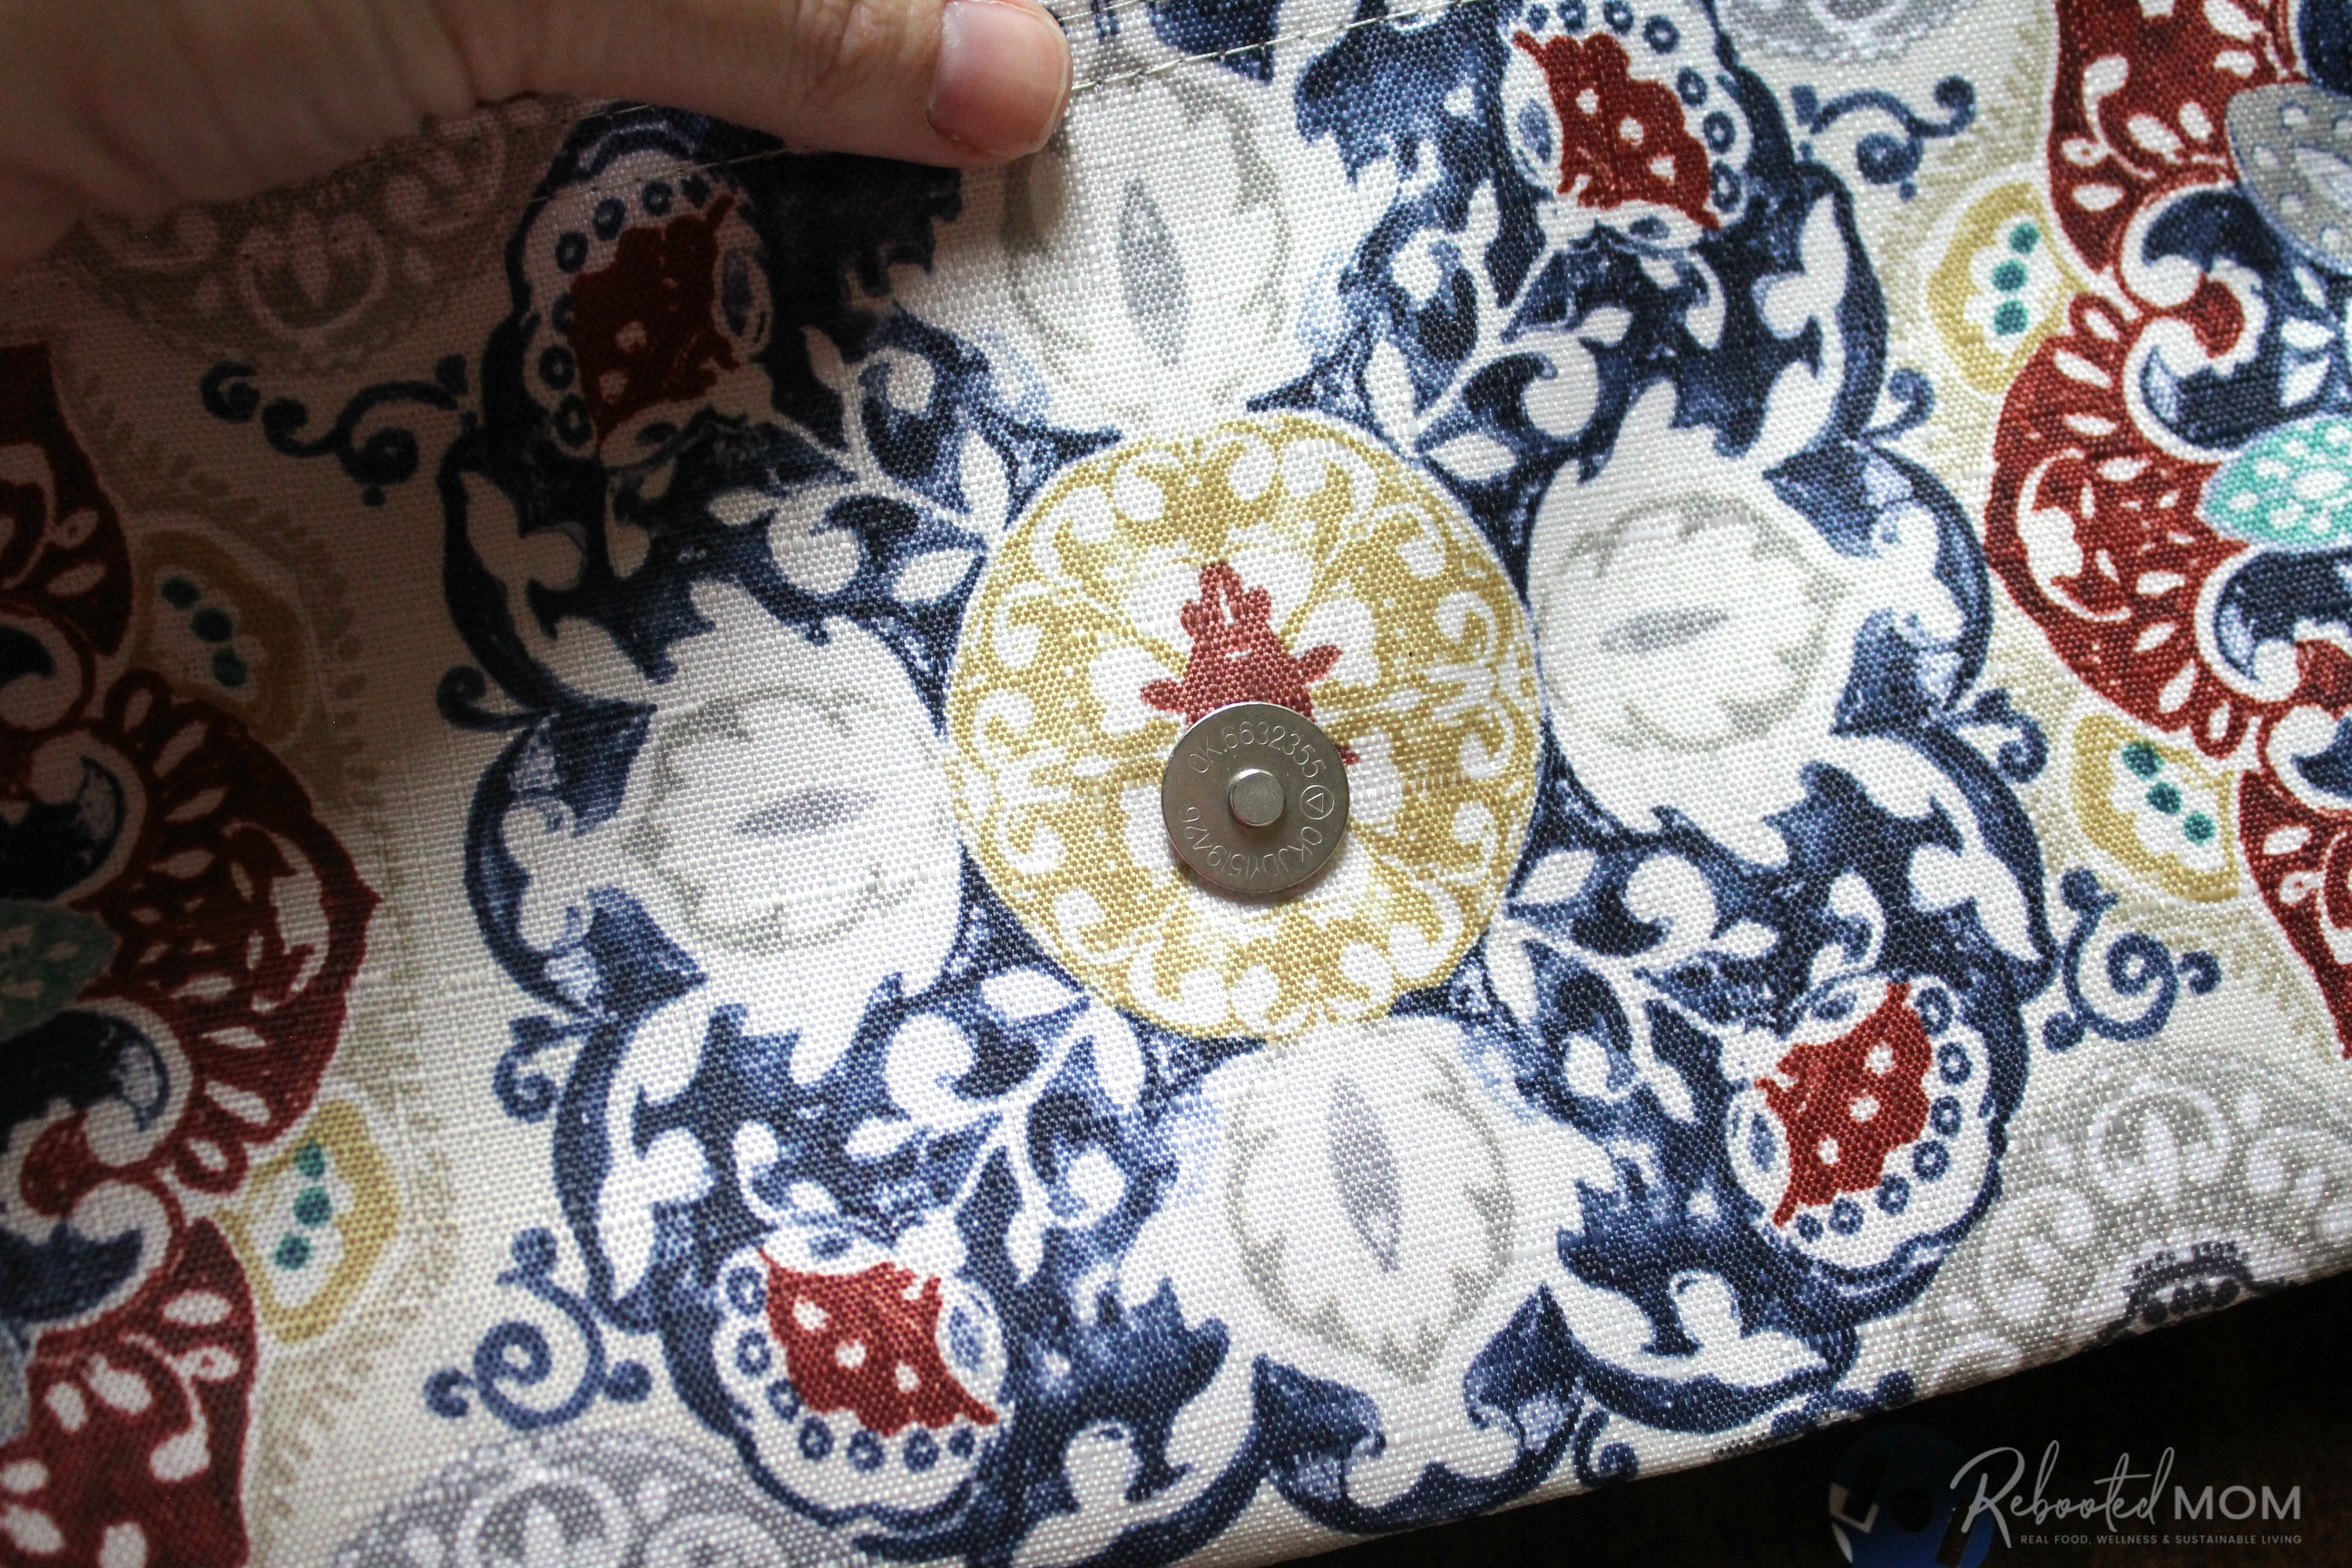 Step 6 - placemat clutch purse \\ This placemat clutch purse comes together in under ten minutes for just a few dollars. It makes a stylish purse or case for baby wipes and a few diapers!